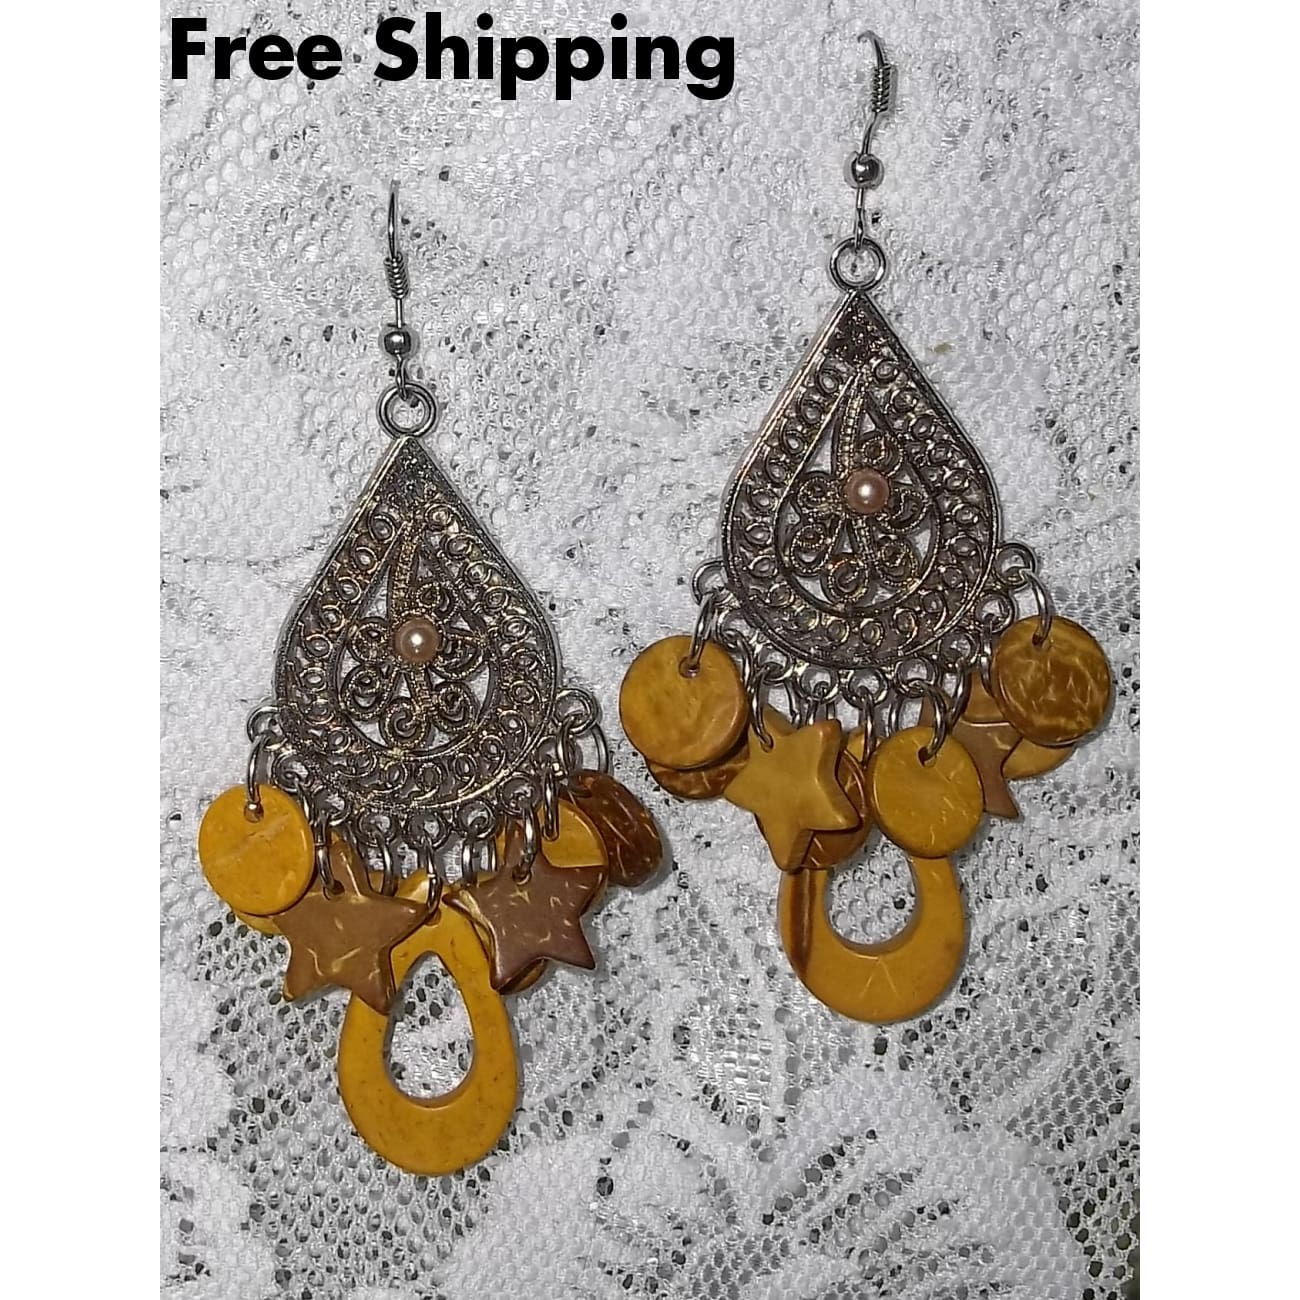 Vintage Chandelier Wooden Beaded Antique Beaded 2.5 Inch Dangle Earrings - Vintage Handcrafted Artisan